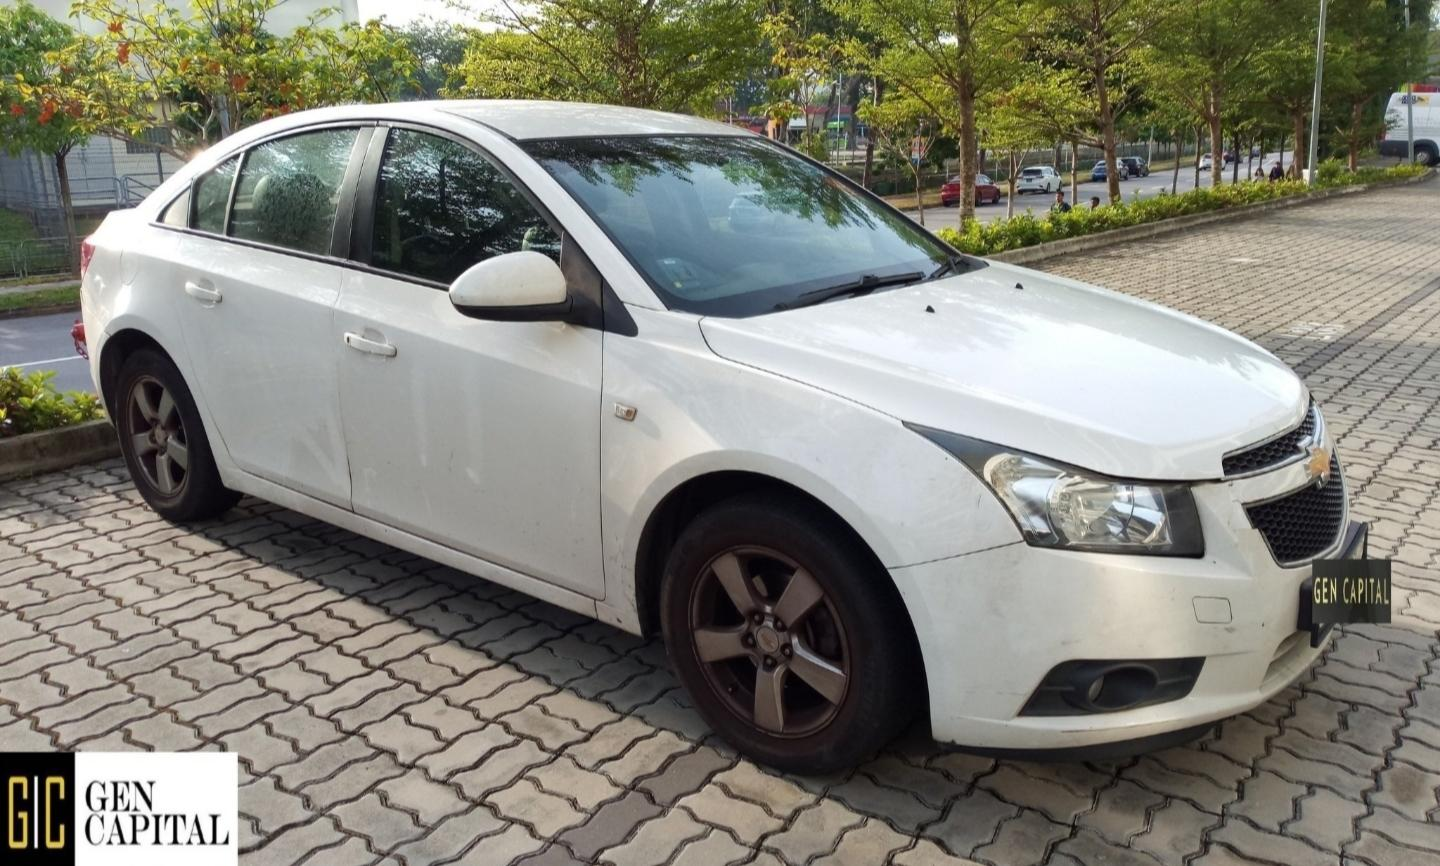 Chevrolet Cruze 1.6A - Lowest rental rates, with many choices to choose from!